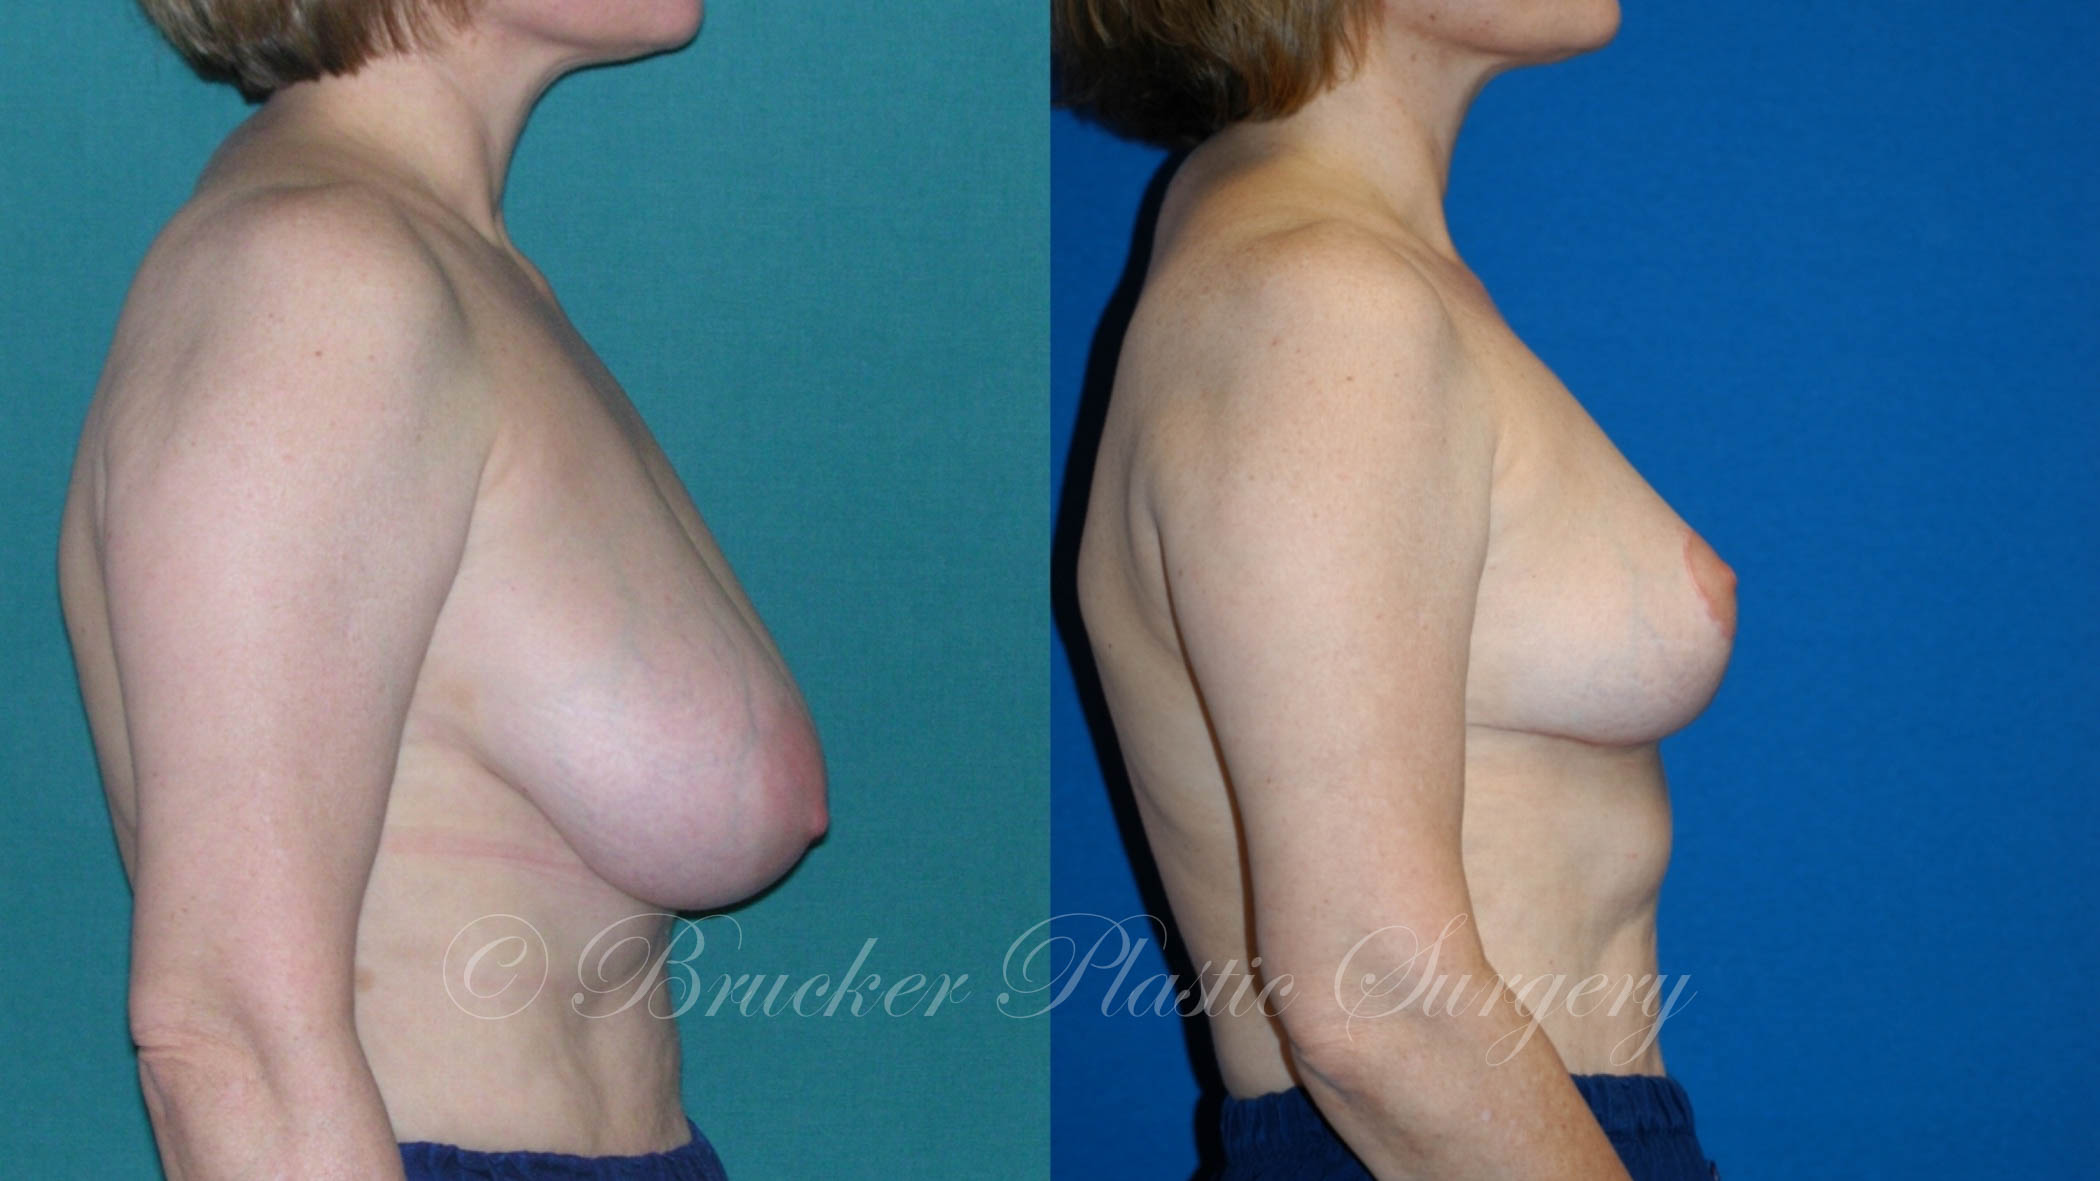 Breast Reduction La Jolla Patient 2